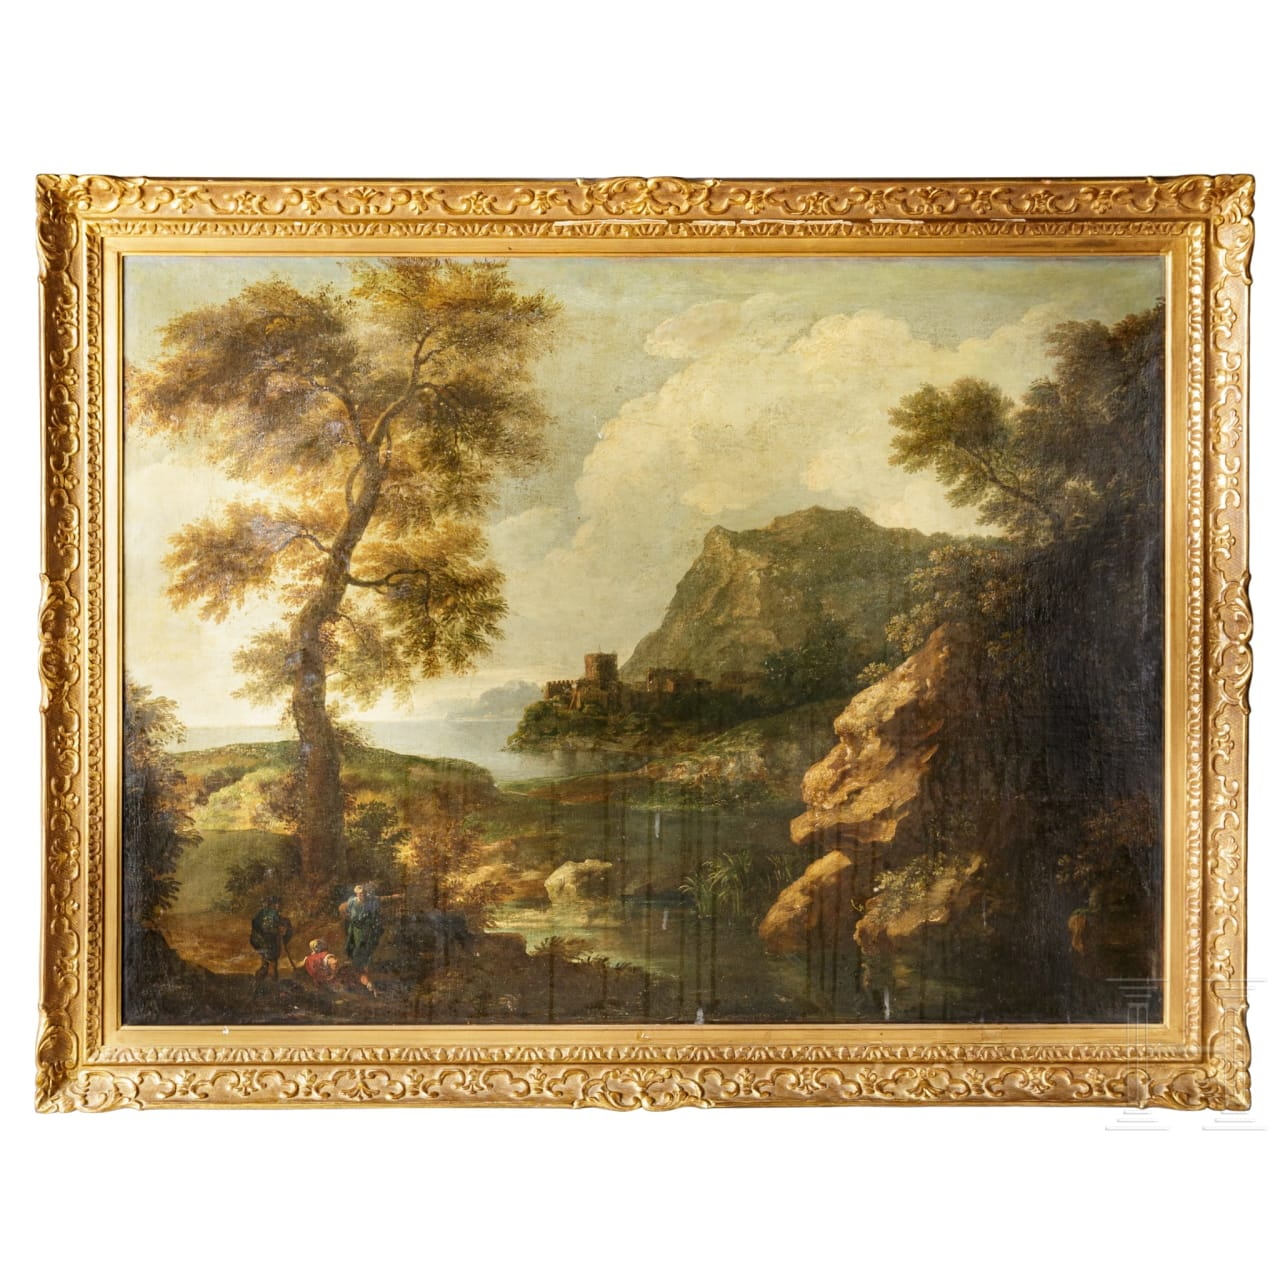 An Italo-Flemish Old Master – A landscape with figures, 17th century